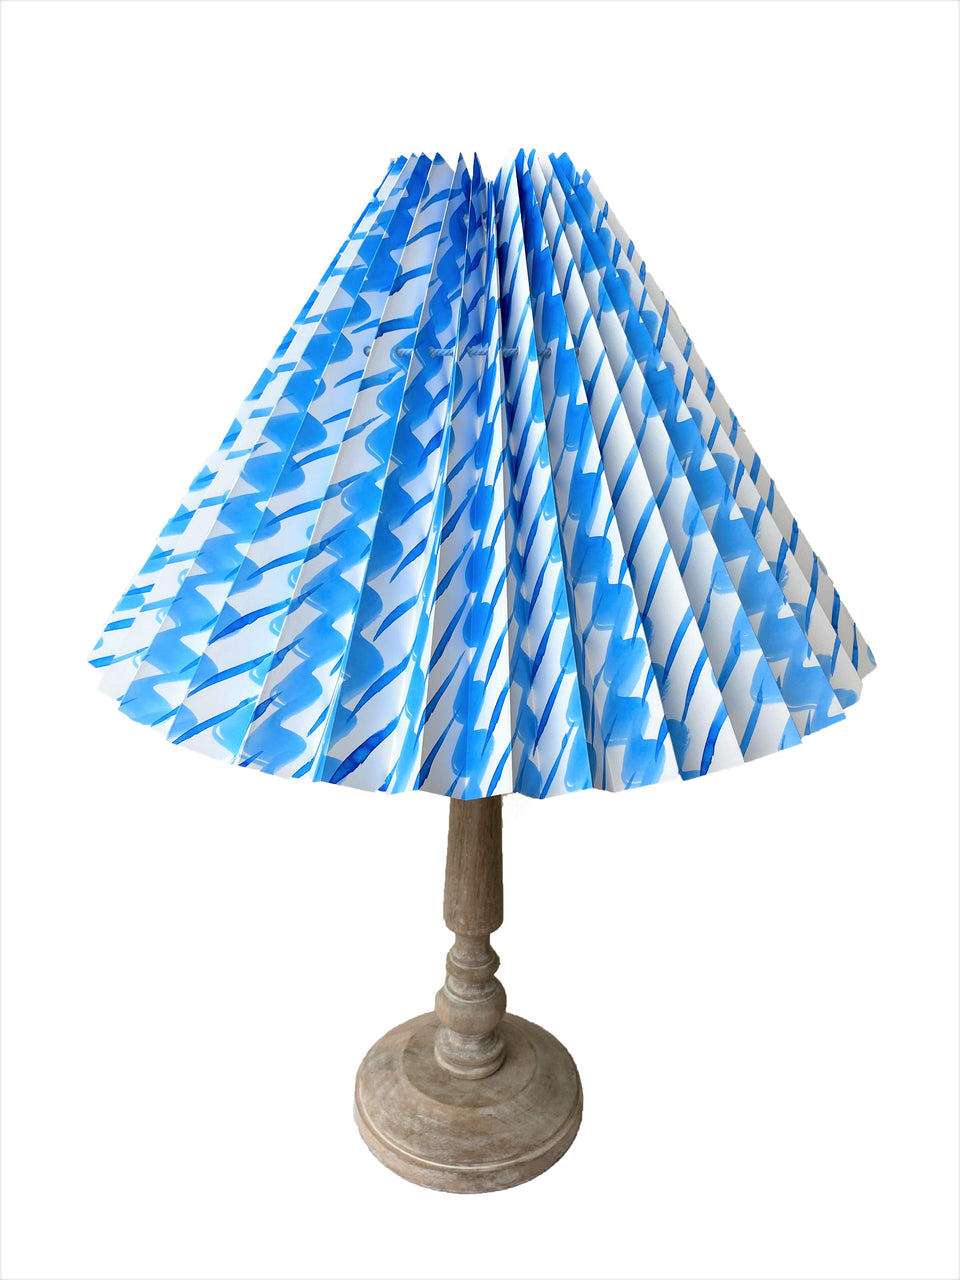 HANDMADE PAPER LAMPSHADE IN SKY BLUE PEBBLE AND DASH HANDPAINTED